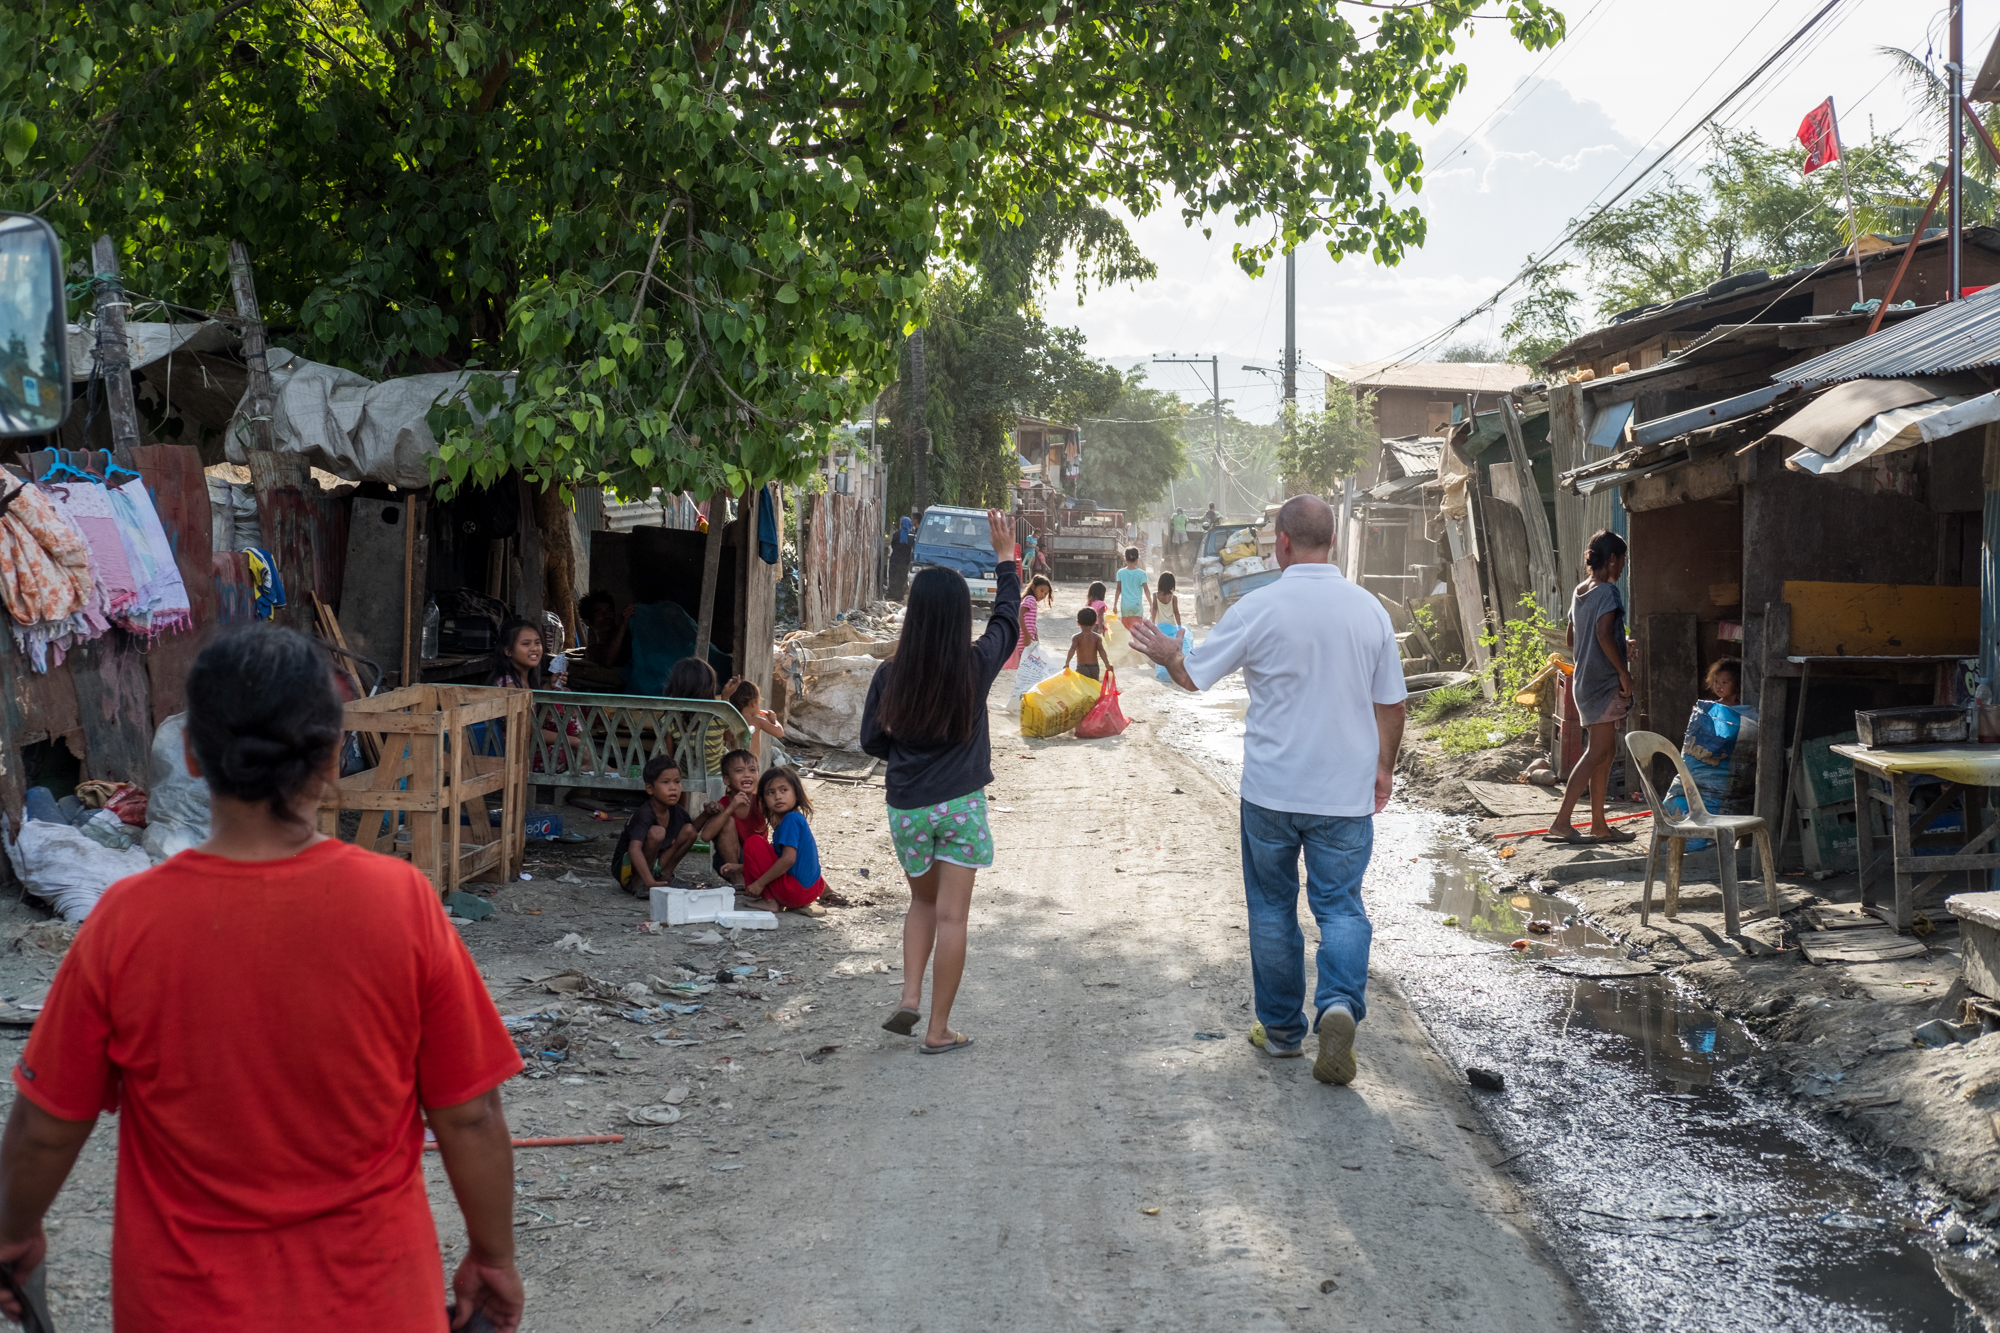 Frank Becker (right) walks with Marie Perly Anciano (left) on a road near the Mandaue Dump Site in Cebu, Philippines. Frank visits the dumpsites daily, and Marie is one of the many children that Frank has helped by donating school supplies and offering meals.